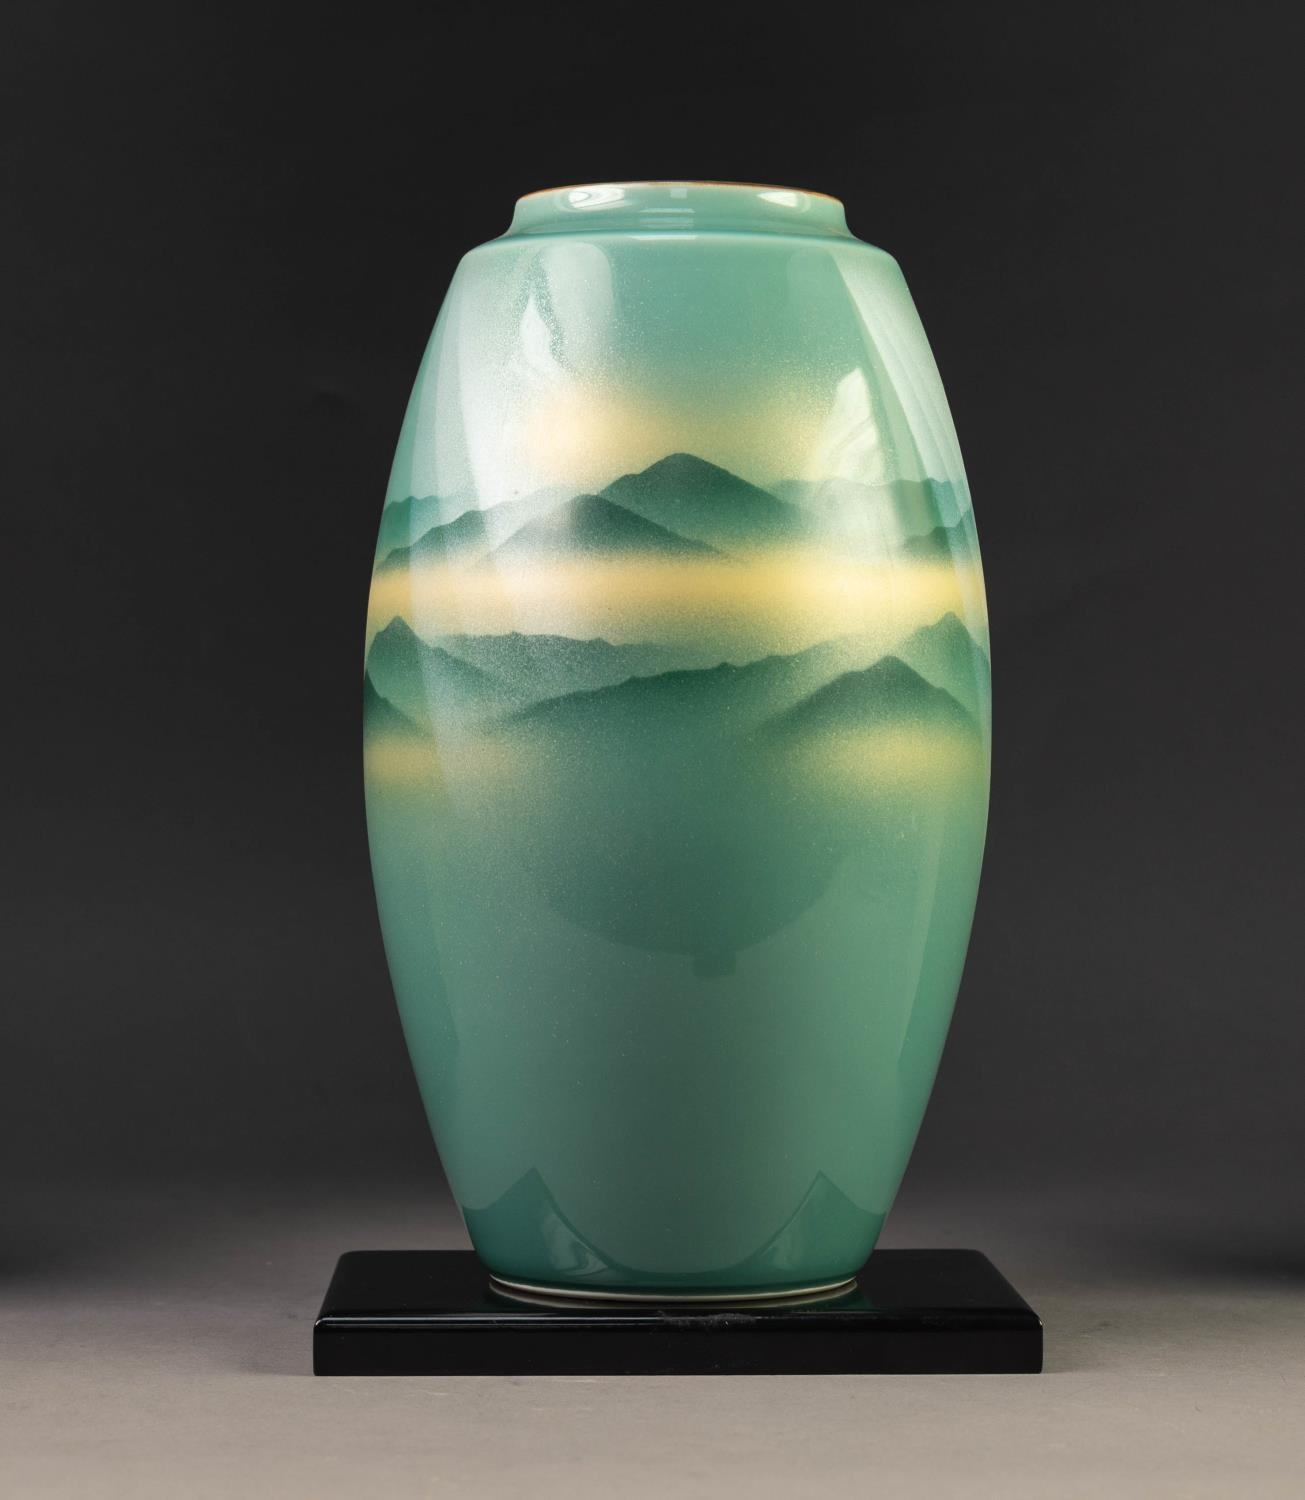 MODERN JAPANESE KUTANI WARE PORCELAIN VASE, of ovoid form, decorated in sprayed shades of green